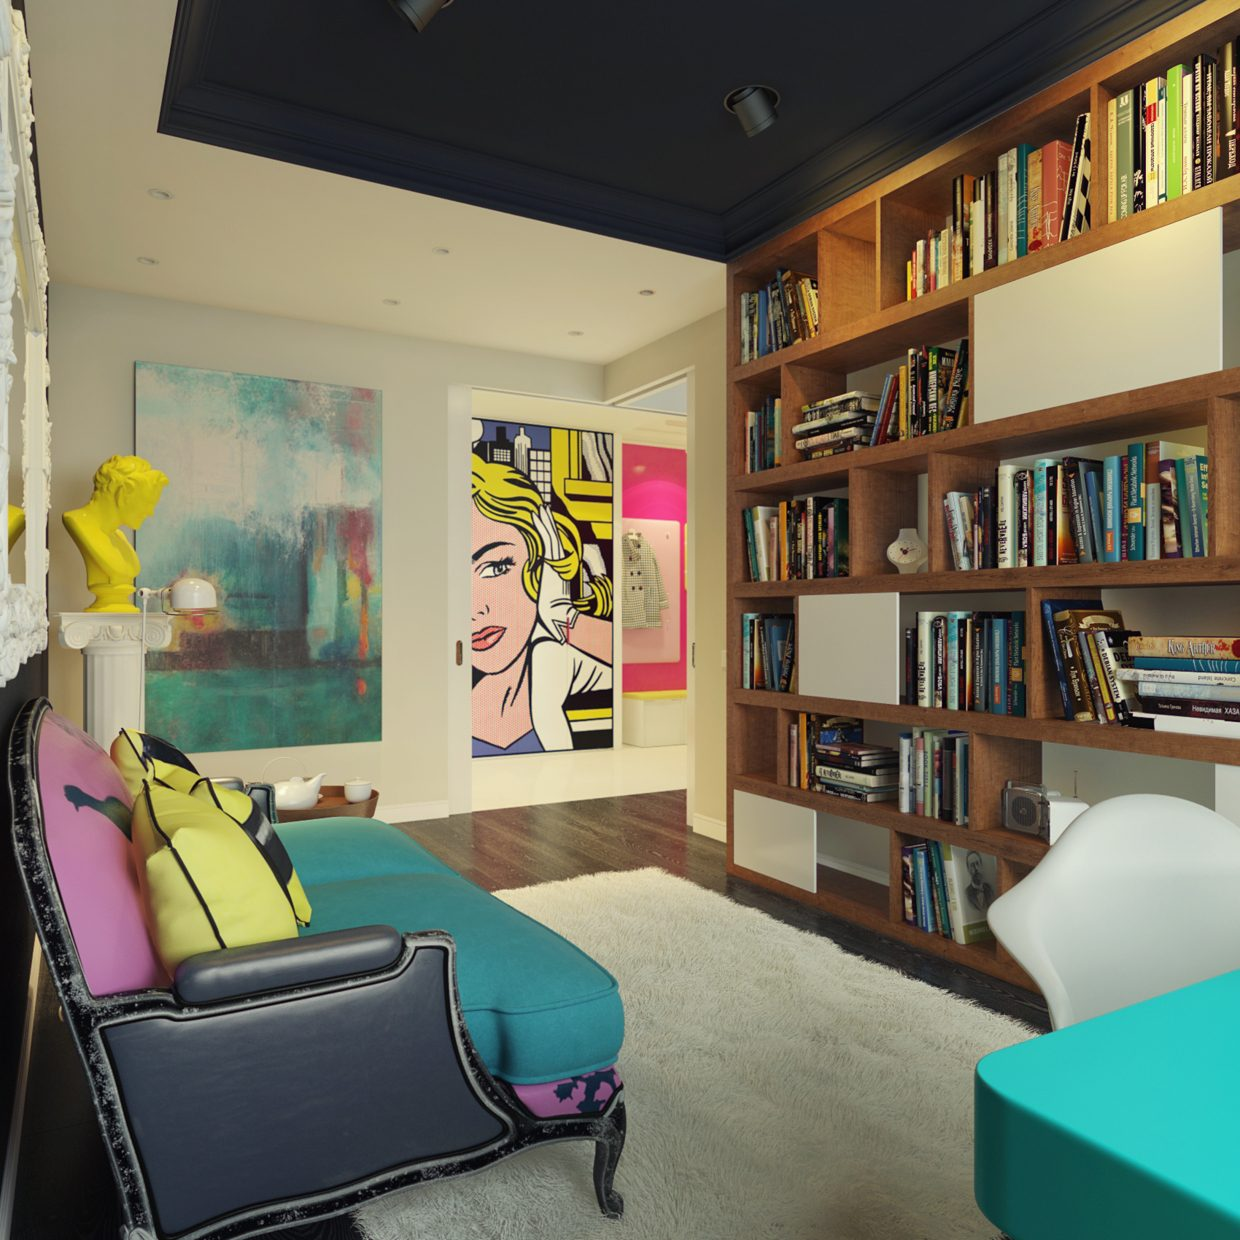 Modern pop art style apartment Art gallery interior design